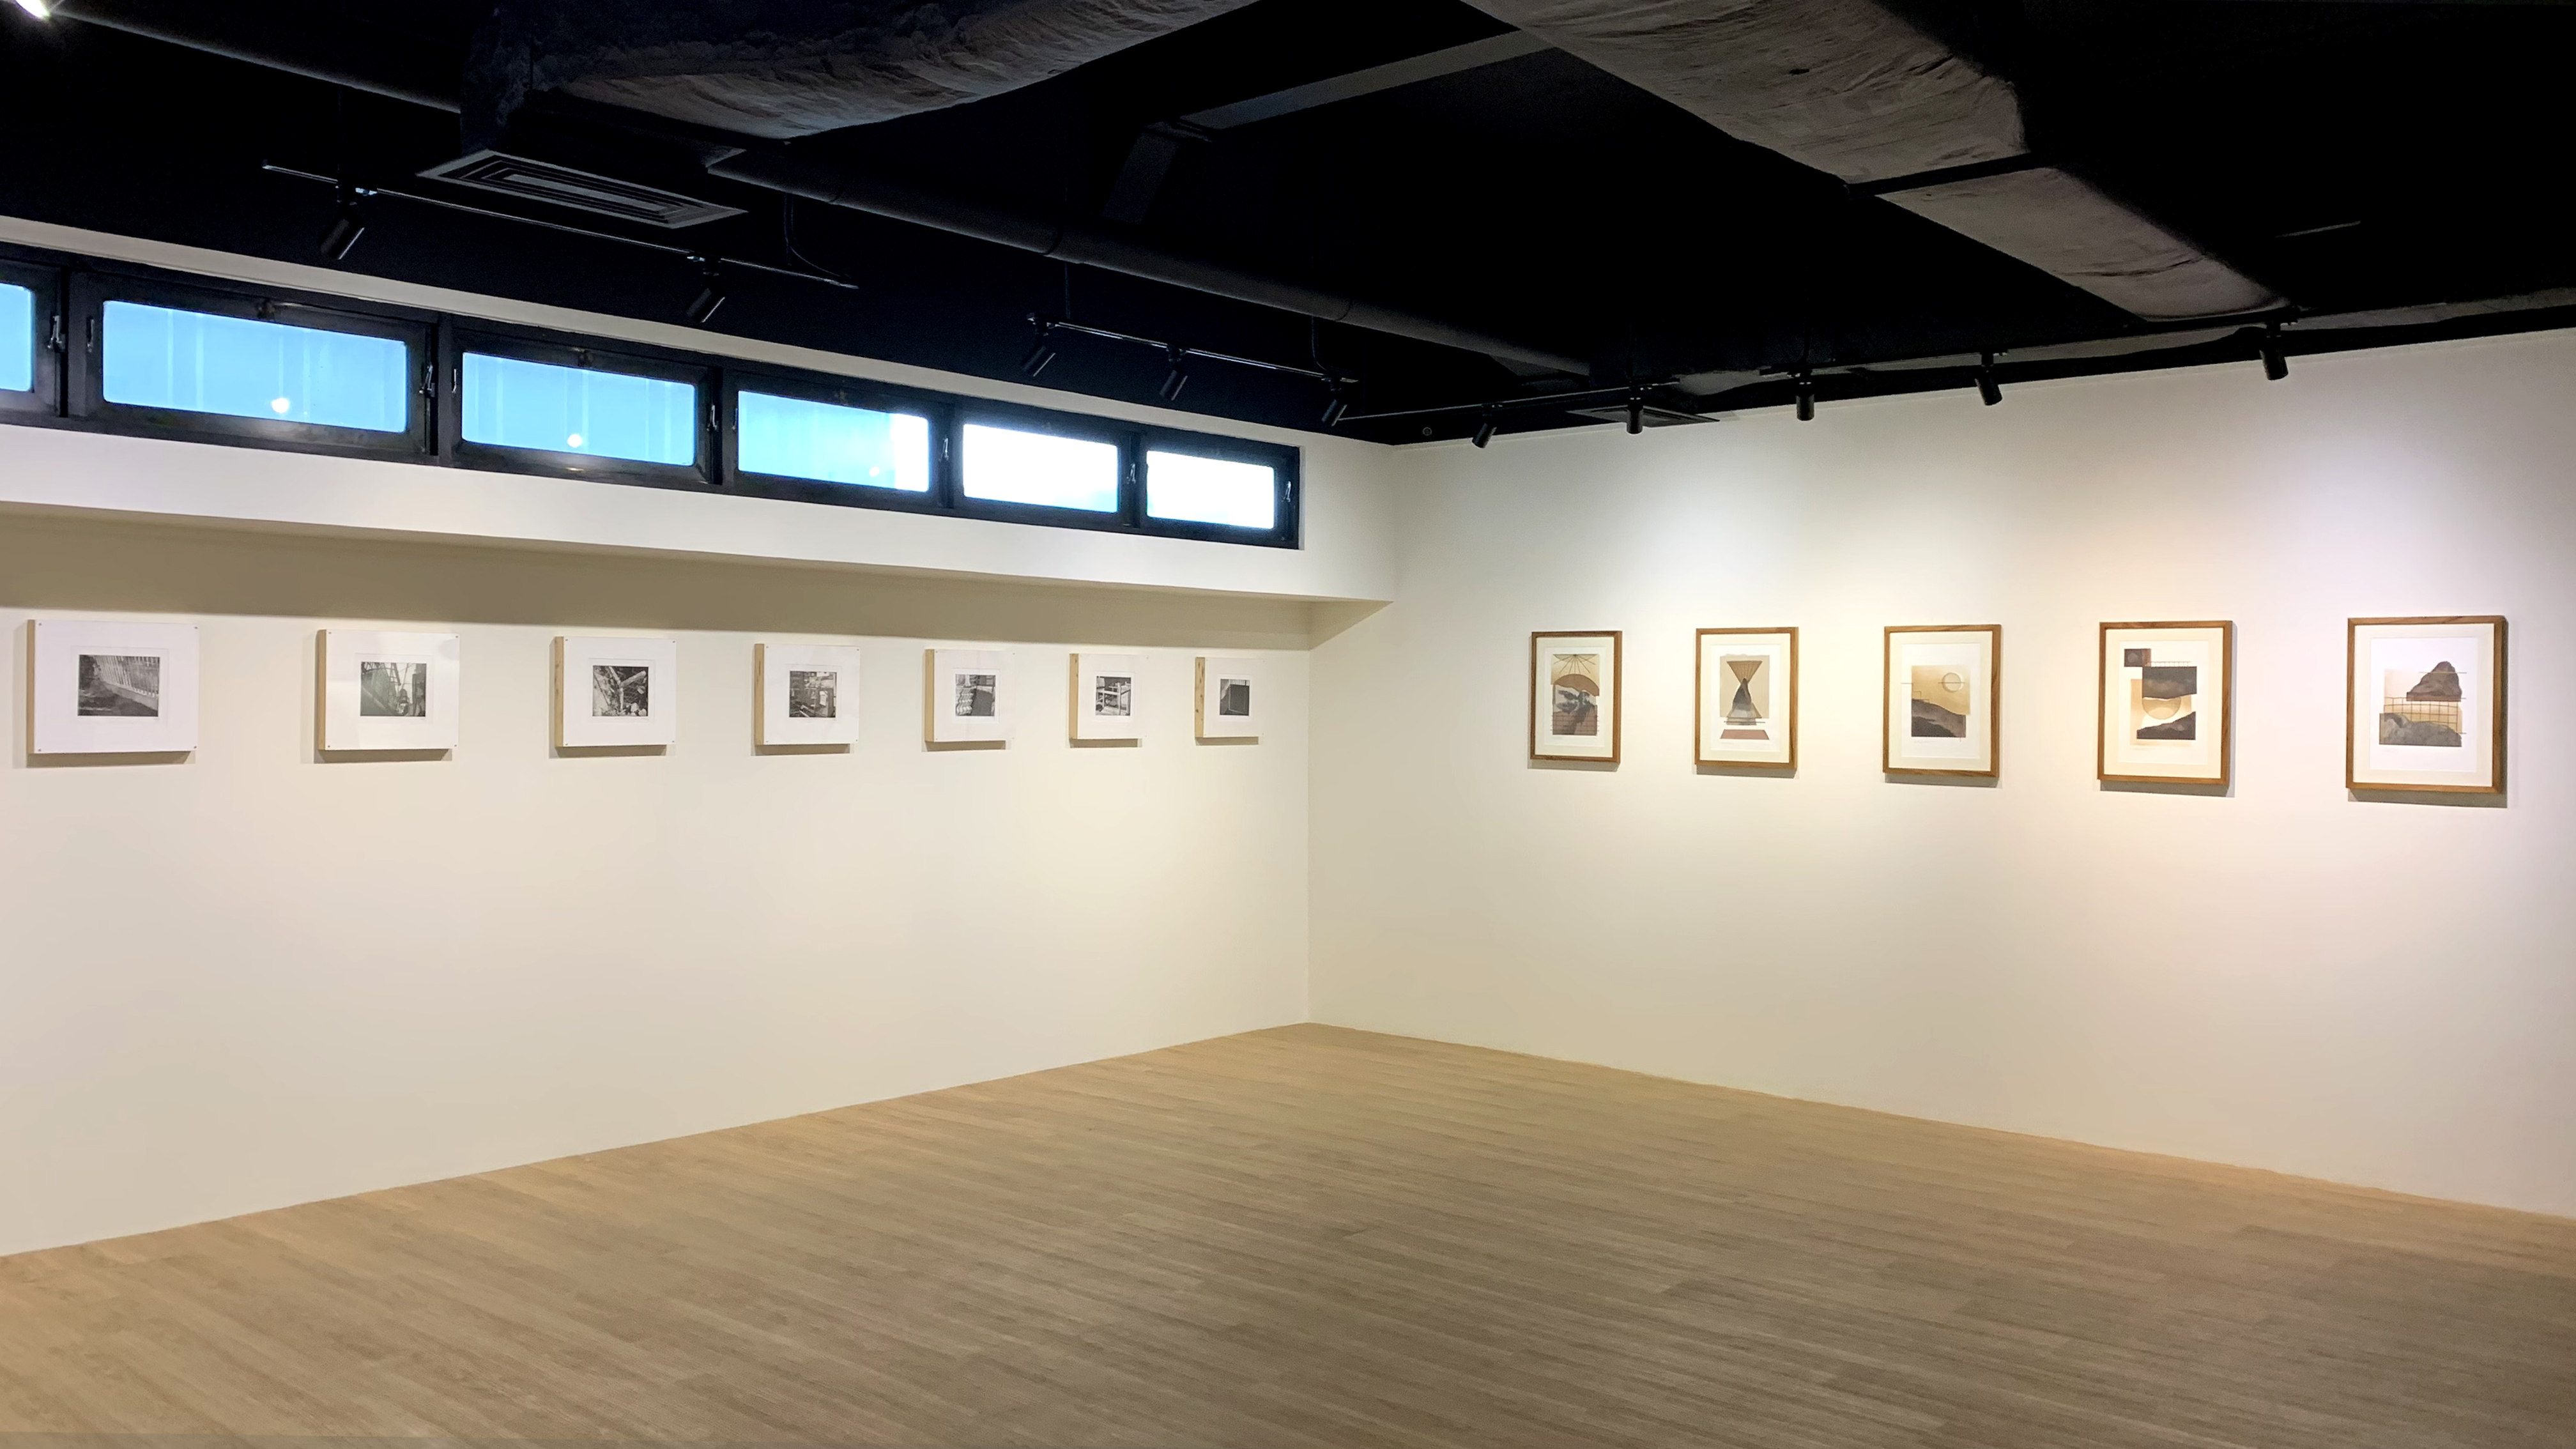 An image of the gallery set up for the exhibition: Criterion